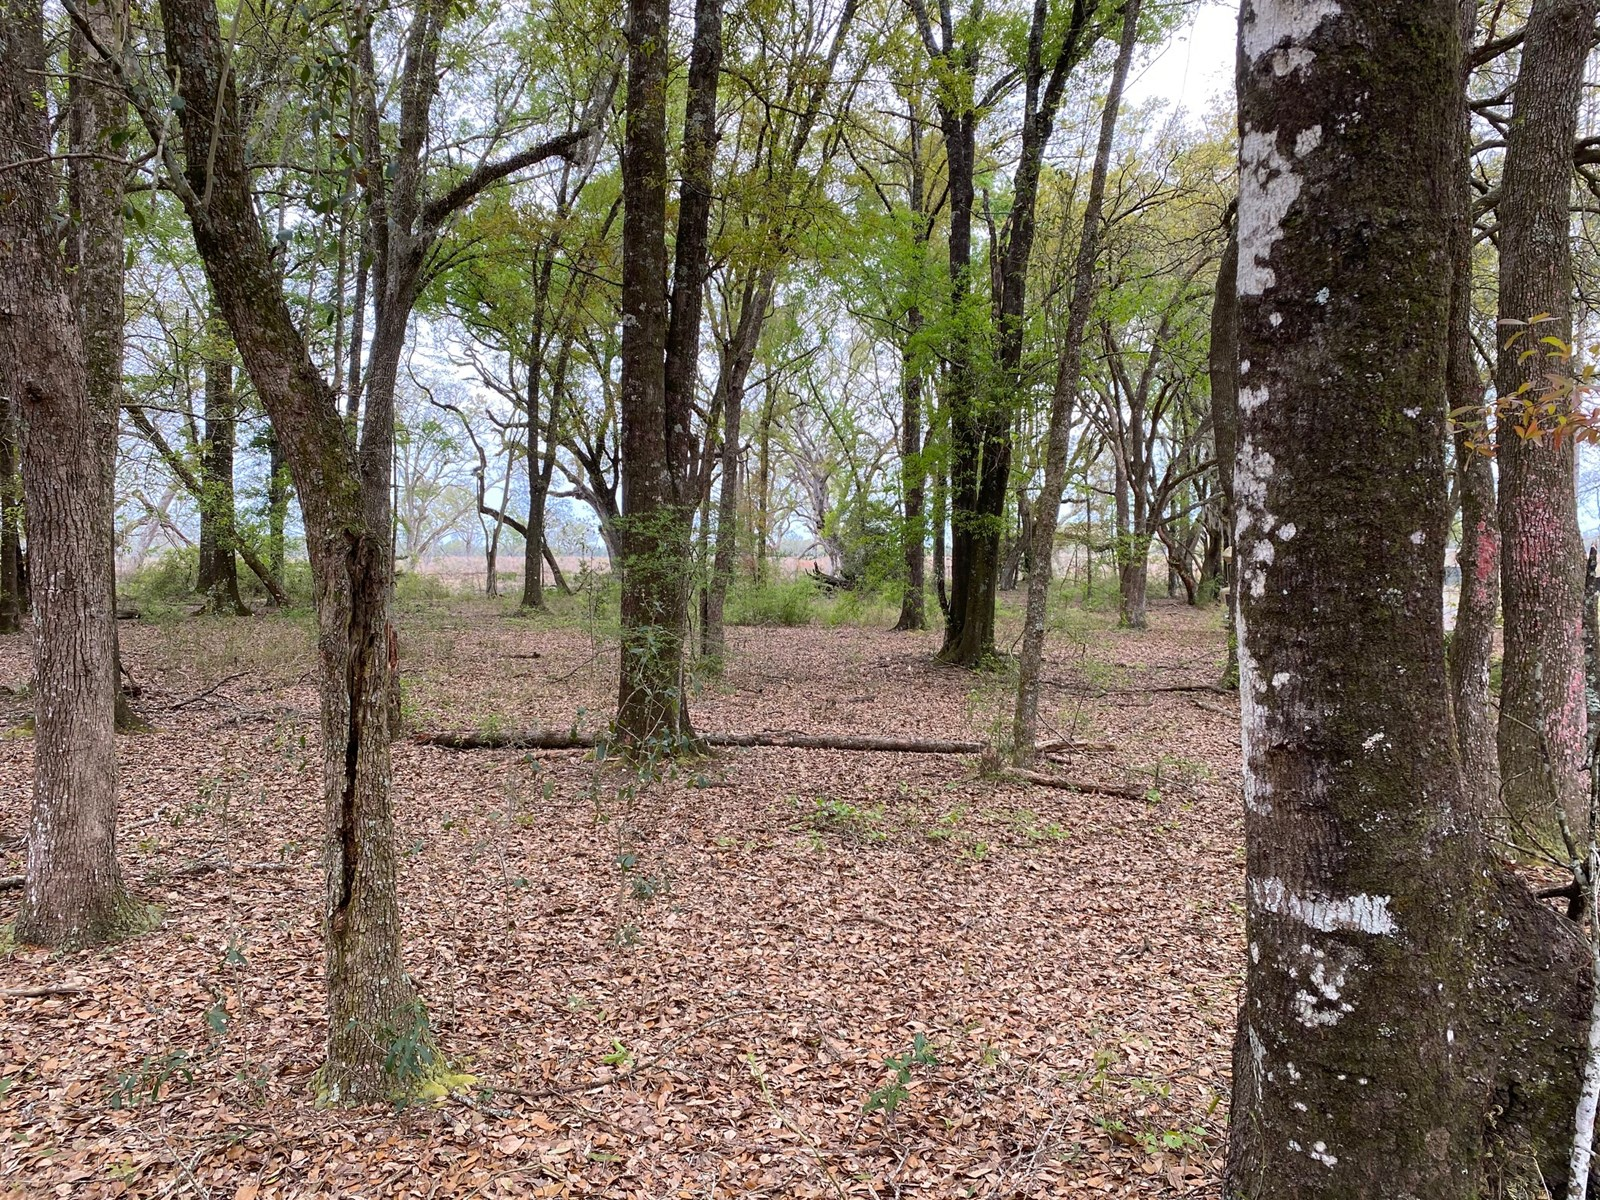 4.51 ACRES LOCATED IN MADISON COUNTY ON SR 53 FOR ONLY $45,0